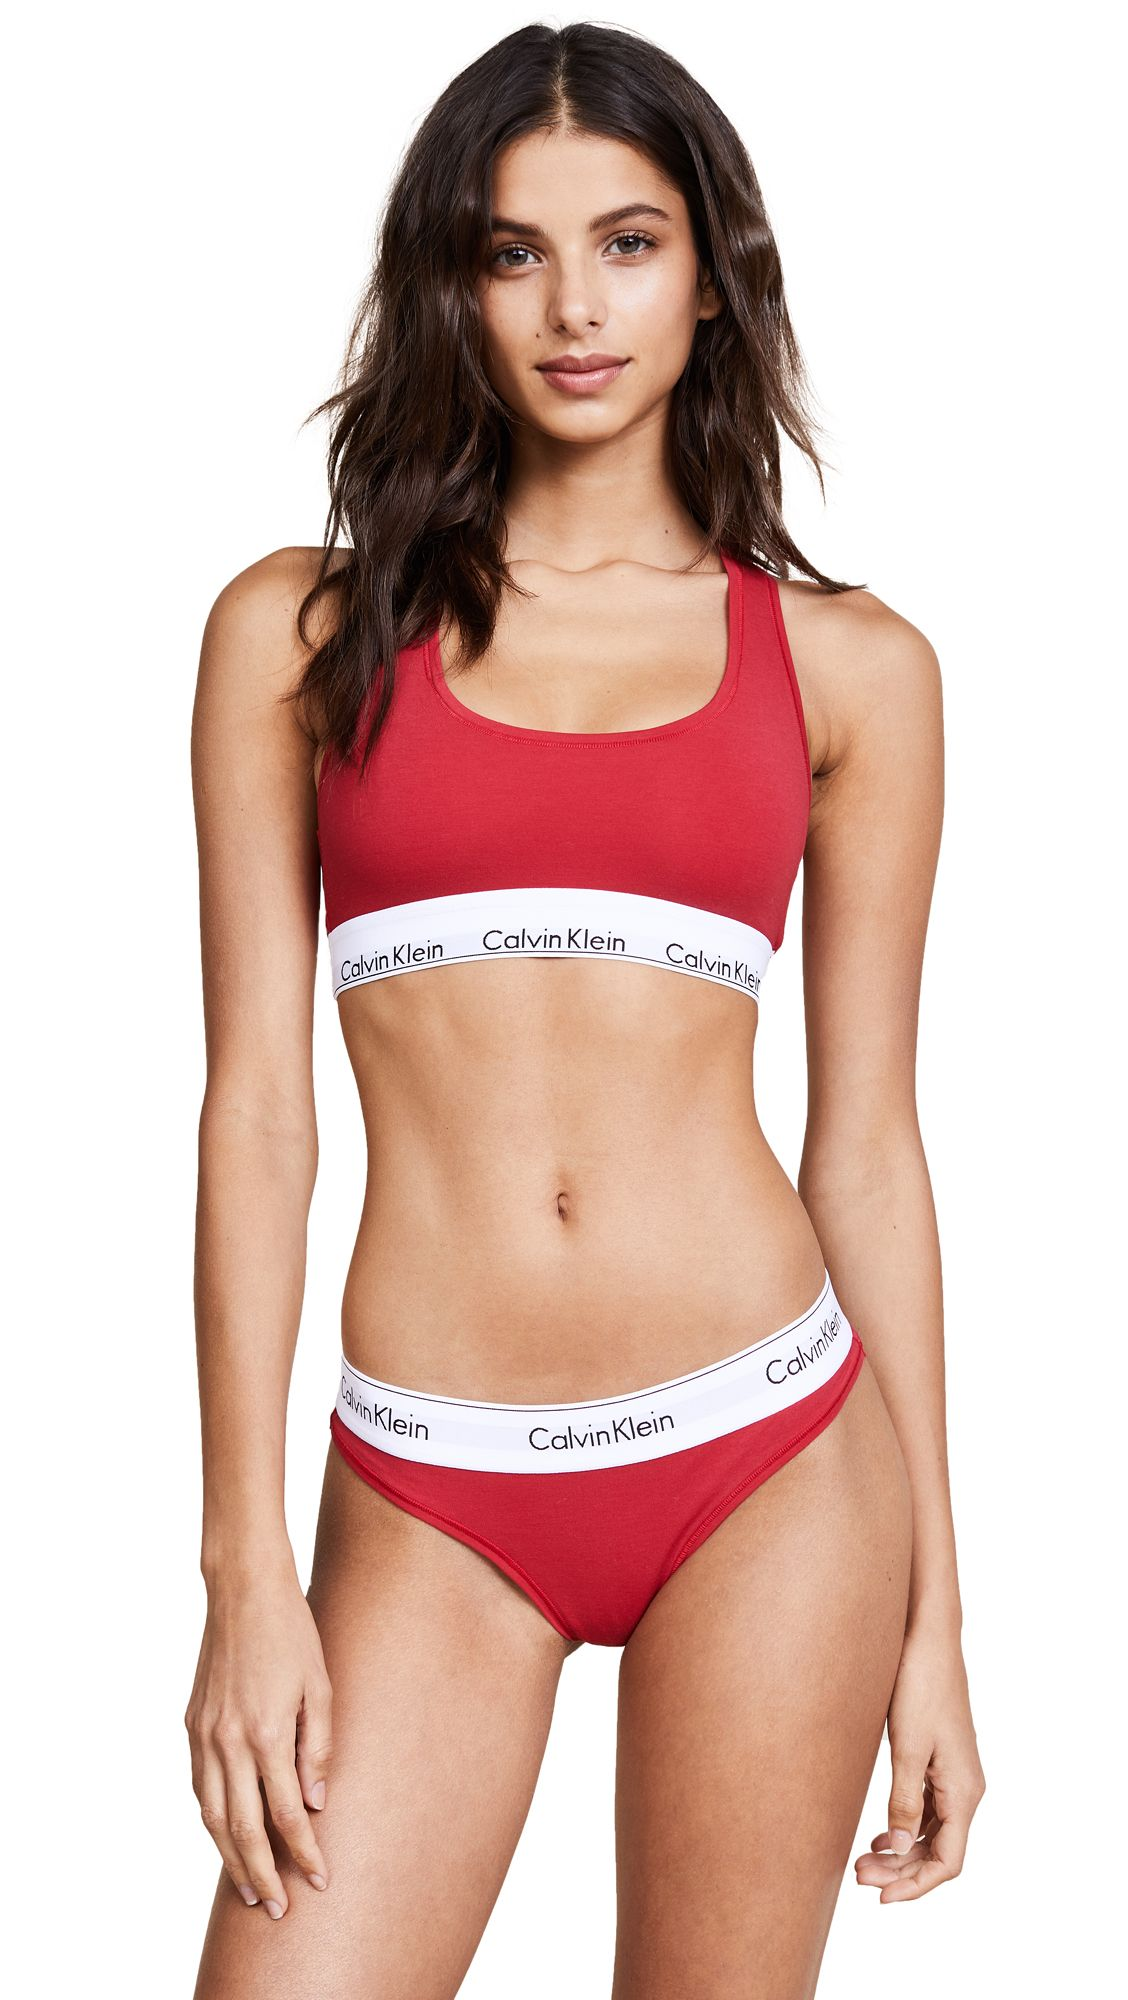 cb9f67f9f653 Valentine's Day gift ideas. Calvin Klein set | Outfit inspiration ...